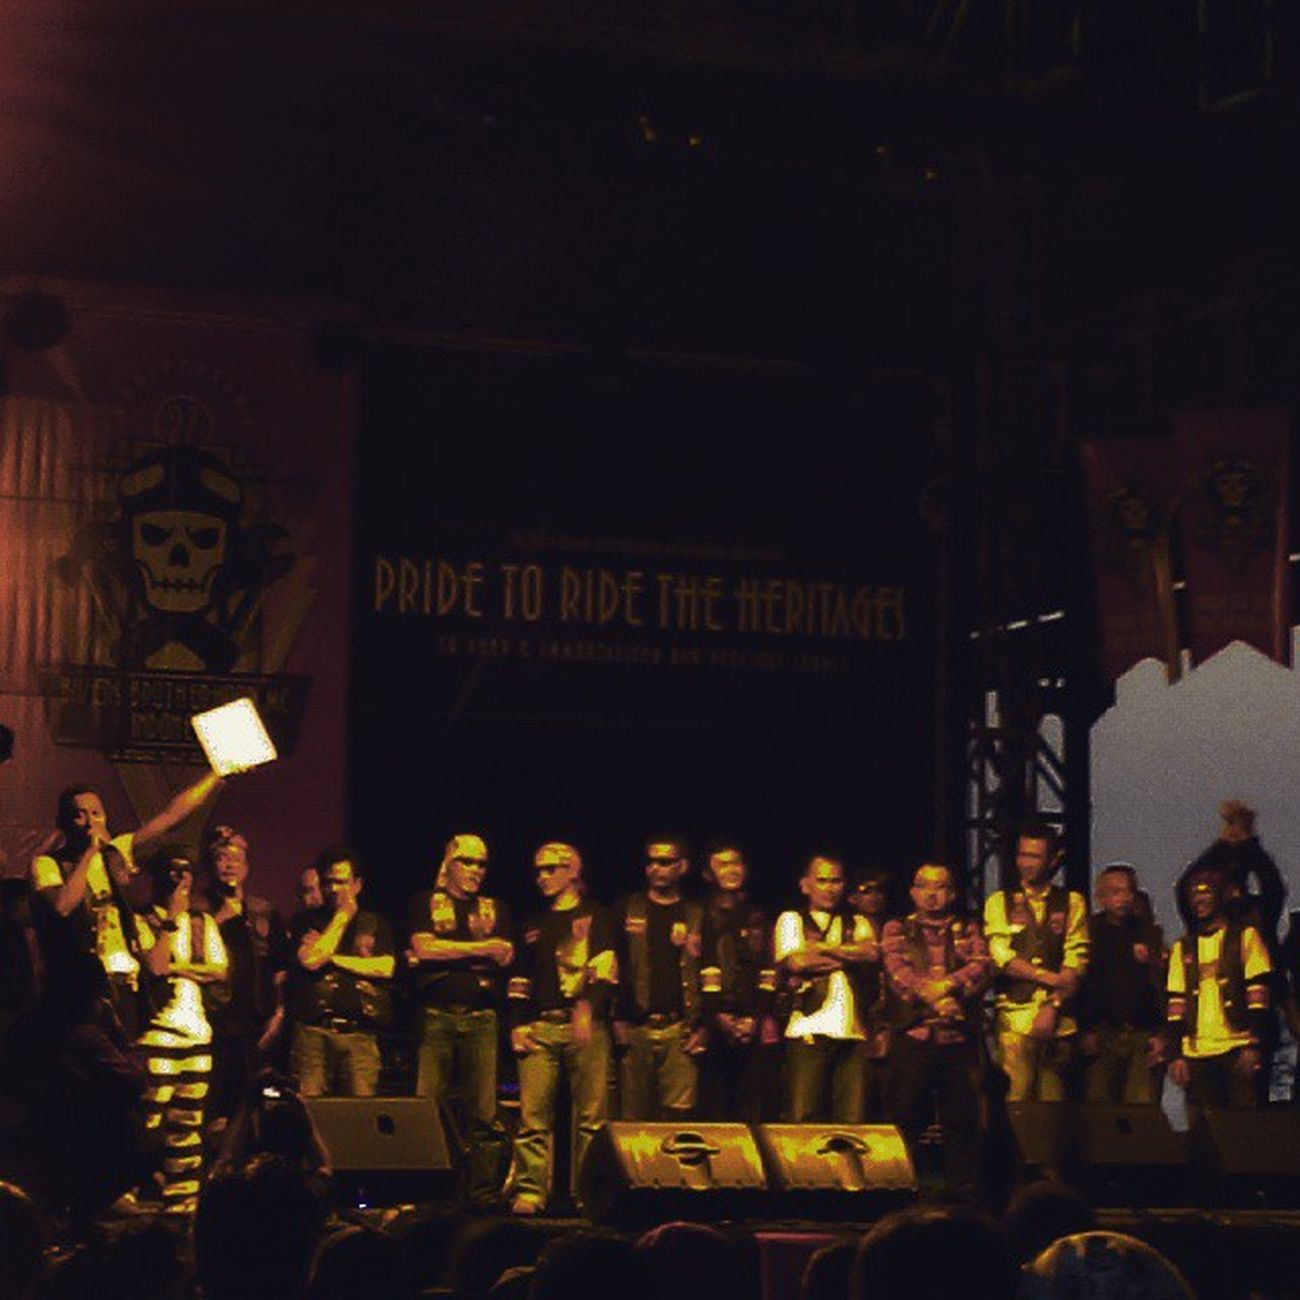 ClosingCeremony LongLive Brotherhood 27thbirthday 27thAnniversary 27thbbmc Bbmc 2662 Pridetoridetheheritages Classic is still the winner ! Classicbike Custombike INDONESIA Bandung Lzybstrd Lenovotography Photophone  Photooftheday Bike Oldbike Costumbike Streetlife Streetbike Besitua Motorkustom ride ridepride undergroundparty respect proudandrespect